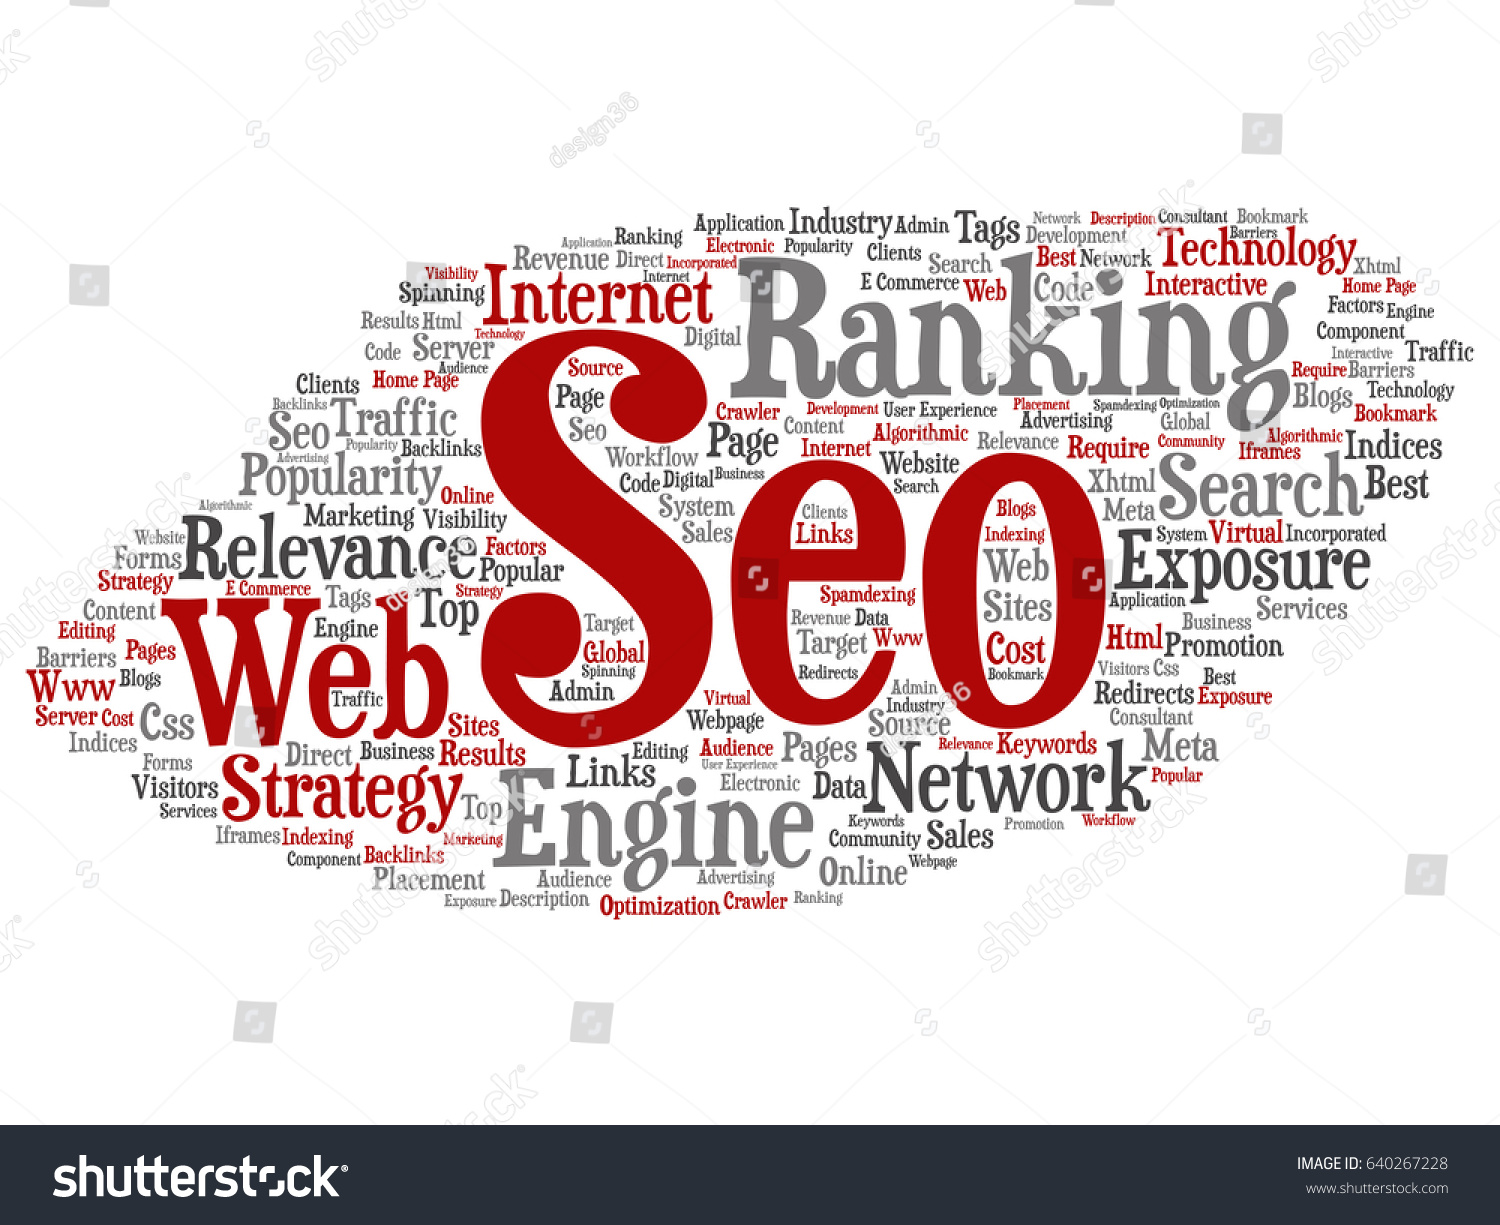 Conceptual Search Results Engine Optimization Top Stock Illustration All Electronic Component On This Page And Following Pages Rank Seo Abstract Online Internet Word Cloud Isolated